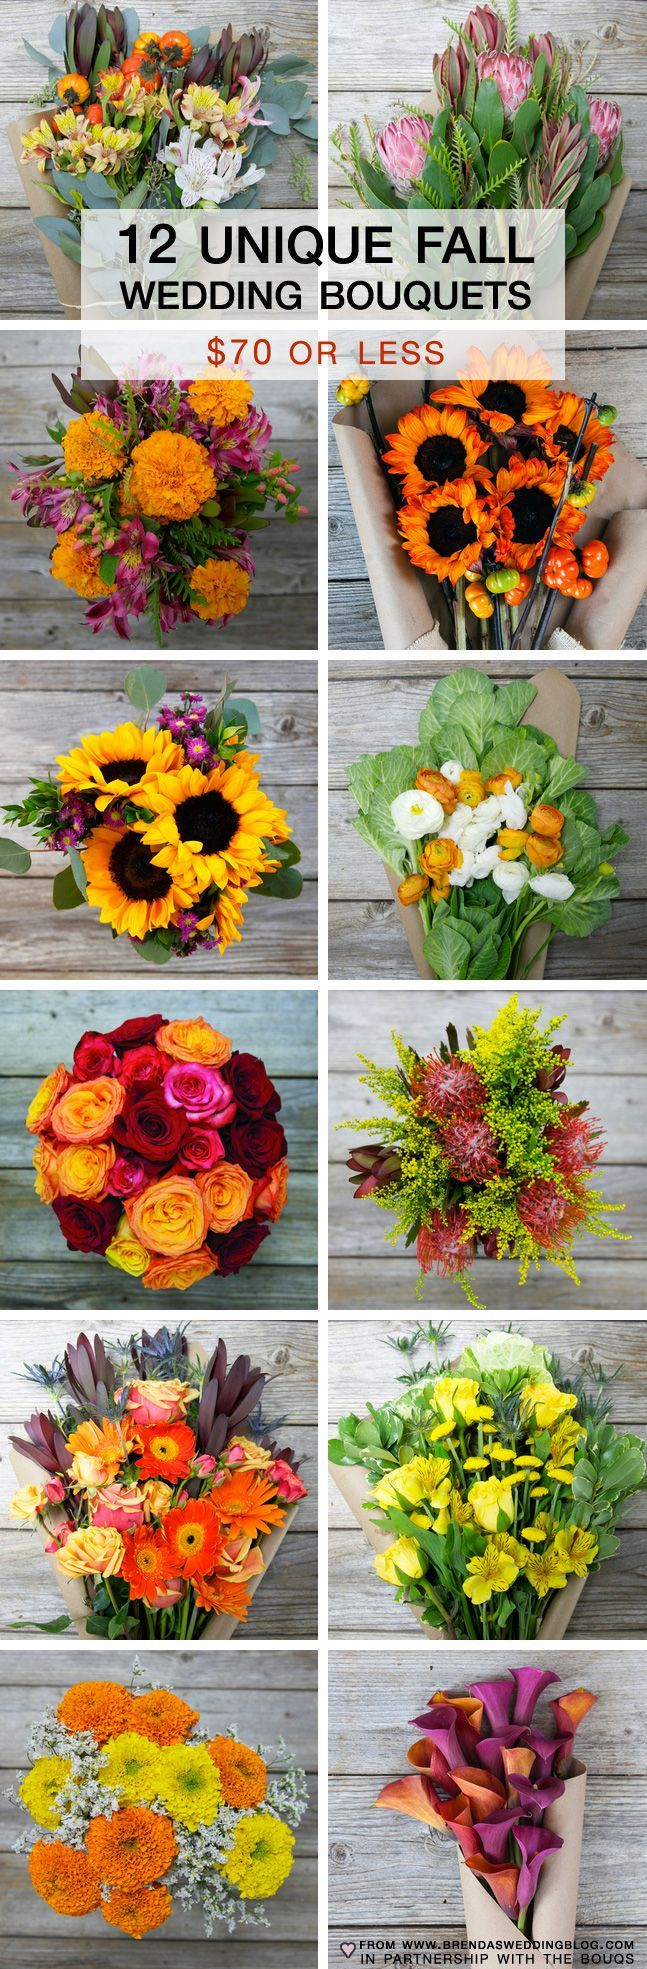 Best 25 fall wedding flowers ideas on pinterest fall wedding 12 unique fall wedding bouquets priced between 40 70 junglespirit Image collections